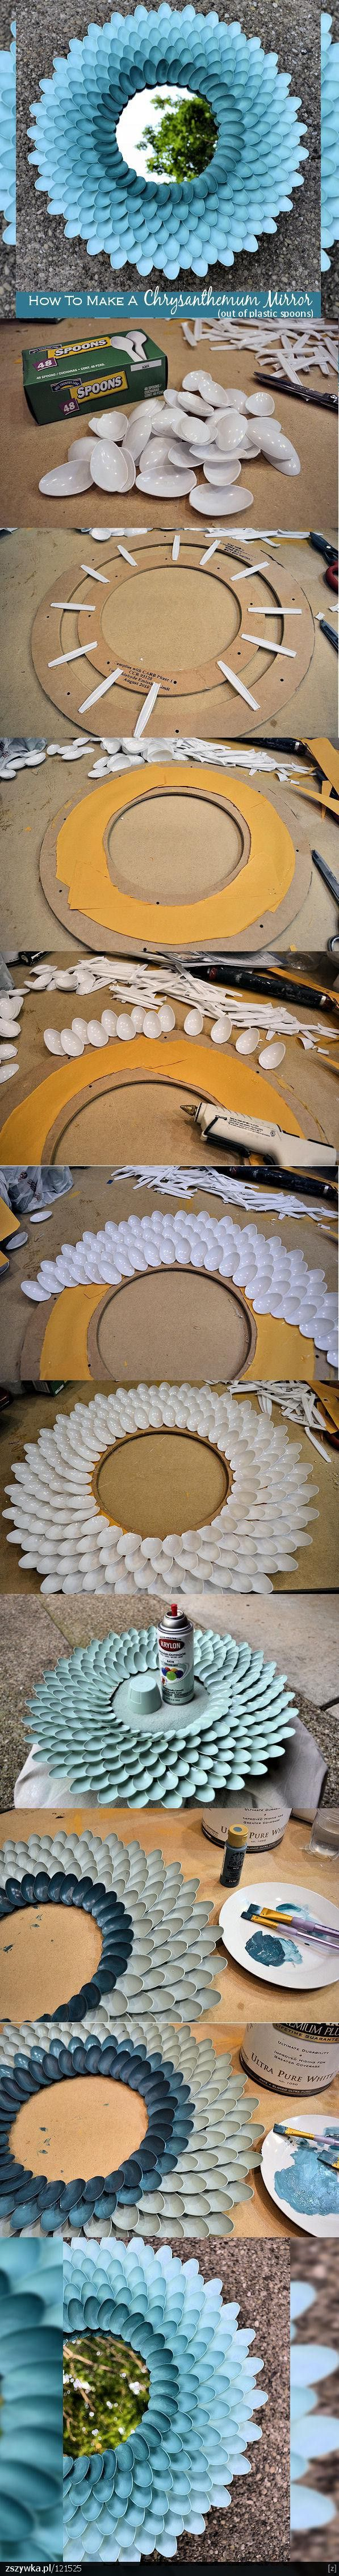 DIY Mirror made of plastic spoons